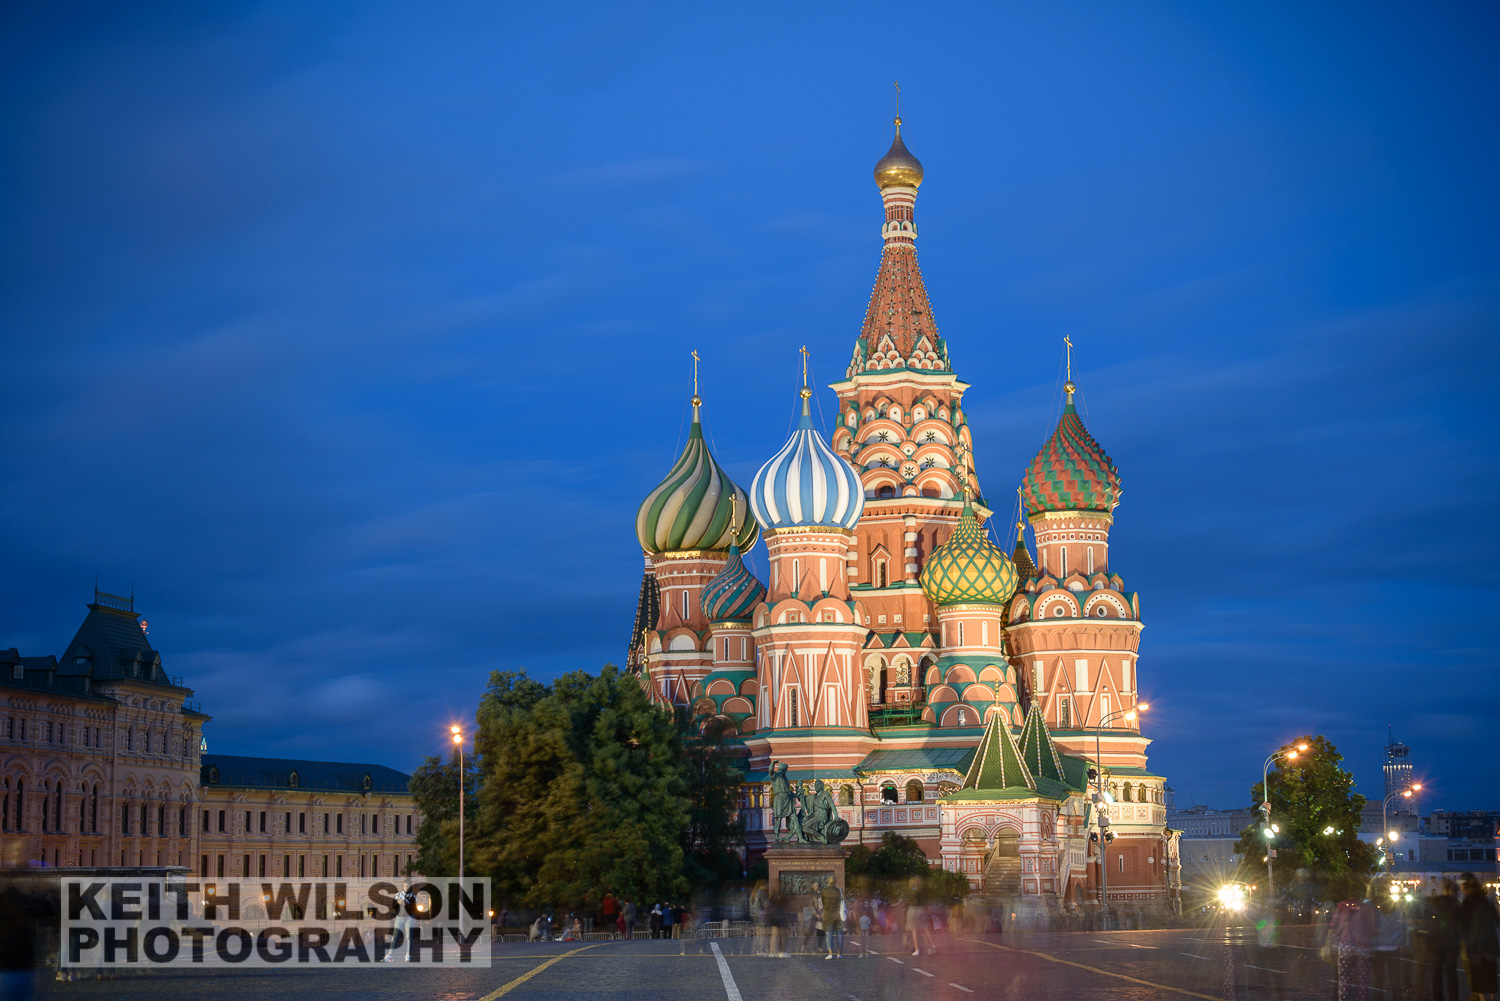 Saint Basil's Cathedral during Blue Hour using a 5 stop ND to capture teh cloud movement and blur the people